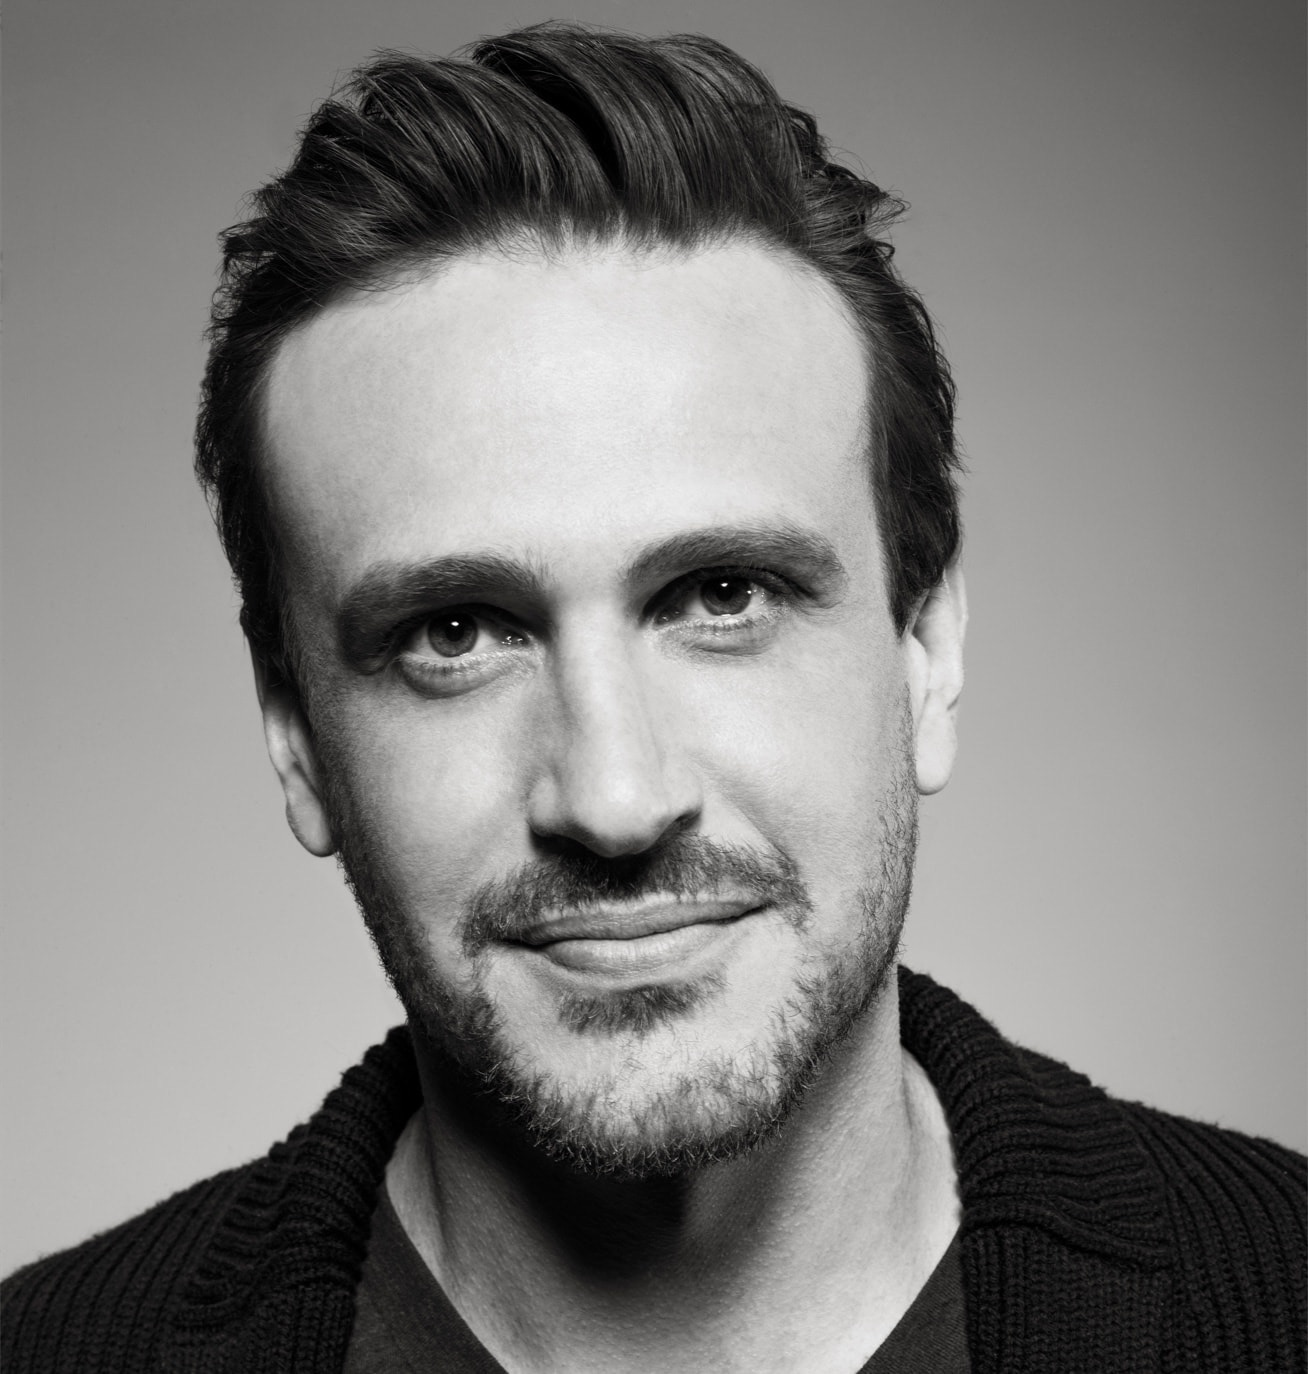 Jason Segel to Star in Apple TV+ Series 'Shrinking' From 'Ted Lasso' Creators